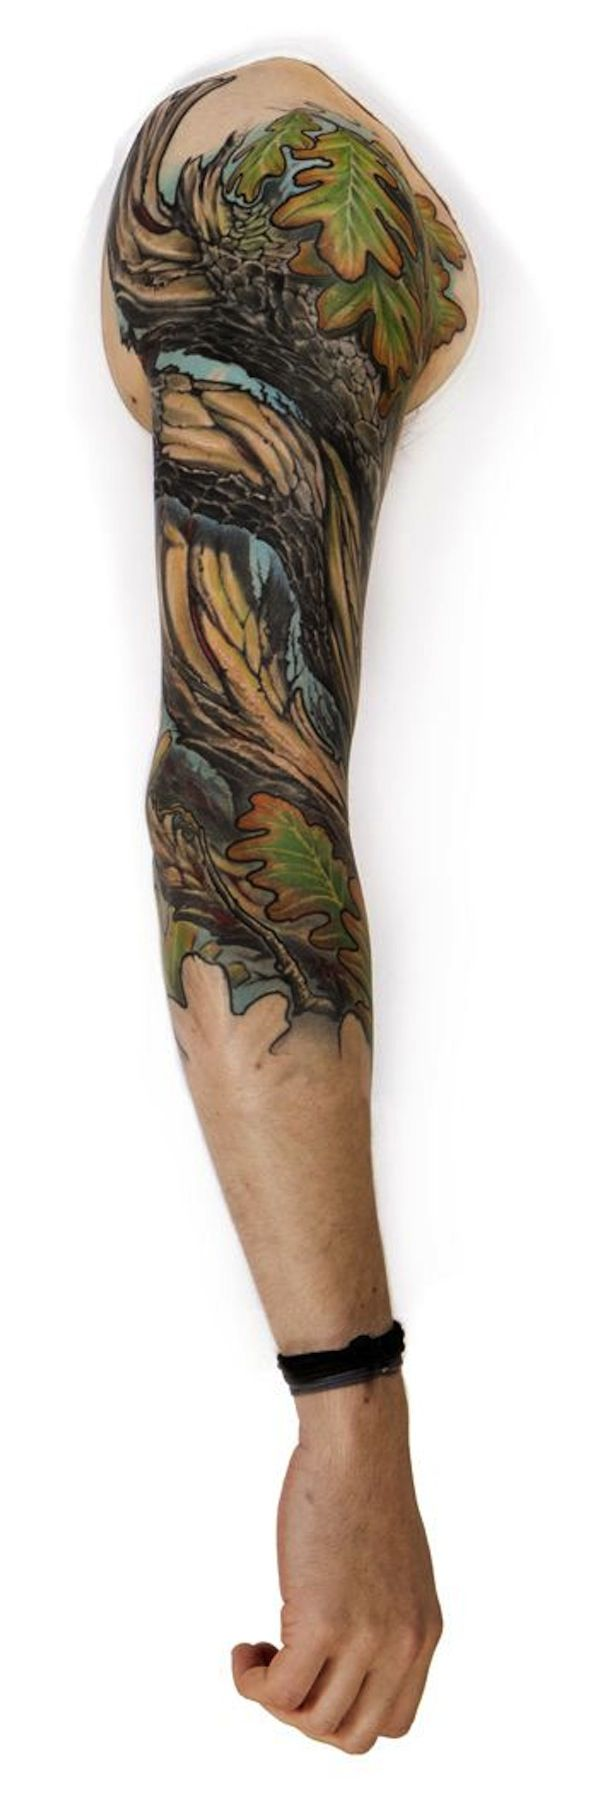 this is an ember oak tattoo which really looks cool tattoomodels tattoo tattoo sleeve. Black Bedroom Furniture Sets. Home Design Ideas